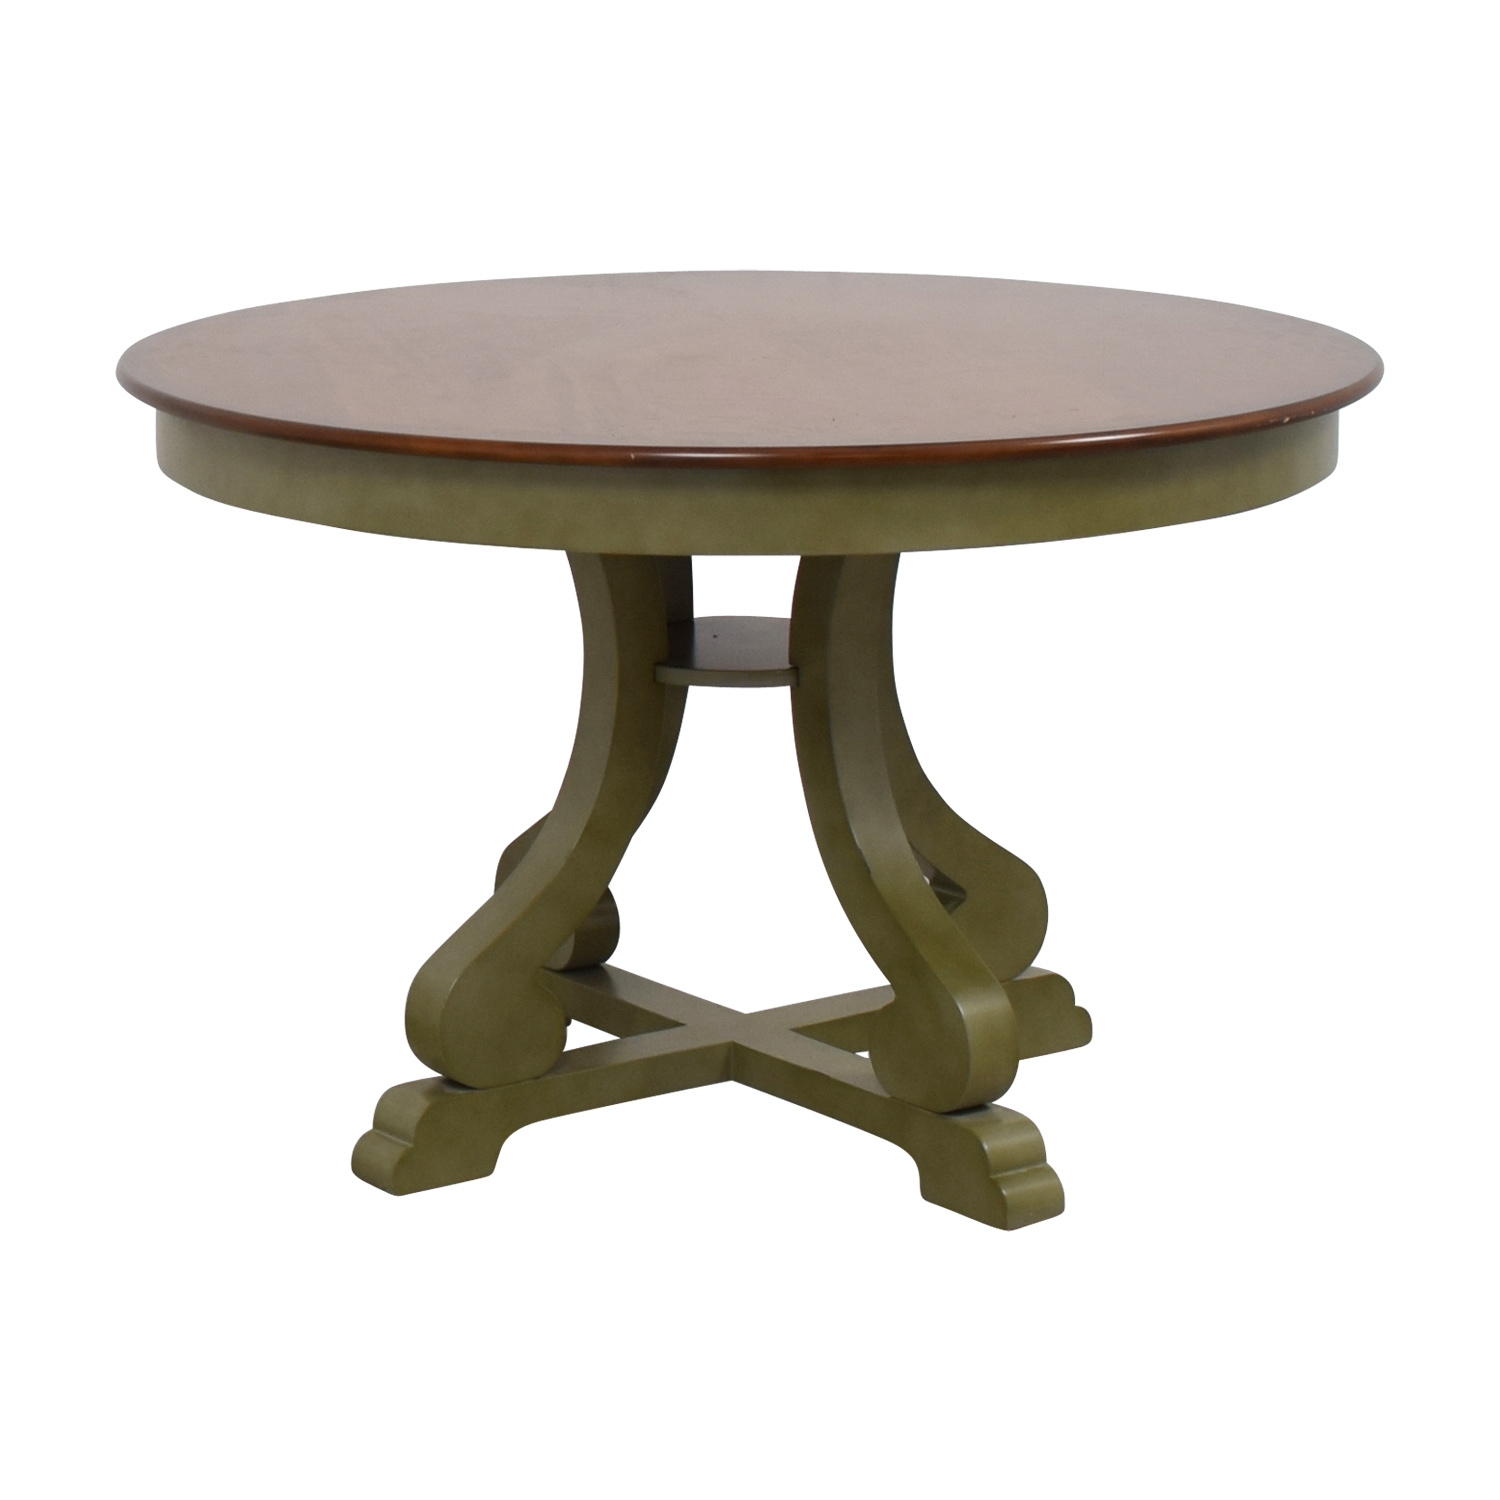 Green Round Table.90 Off Pier 1 Pier 1 Imports Green And Wood Round Dining Table Tables